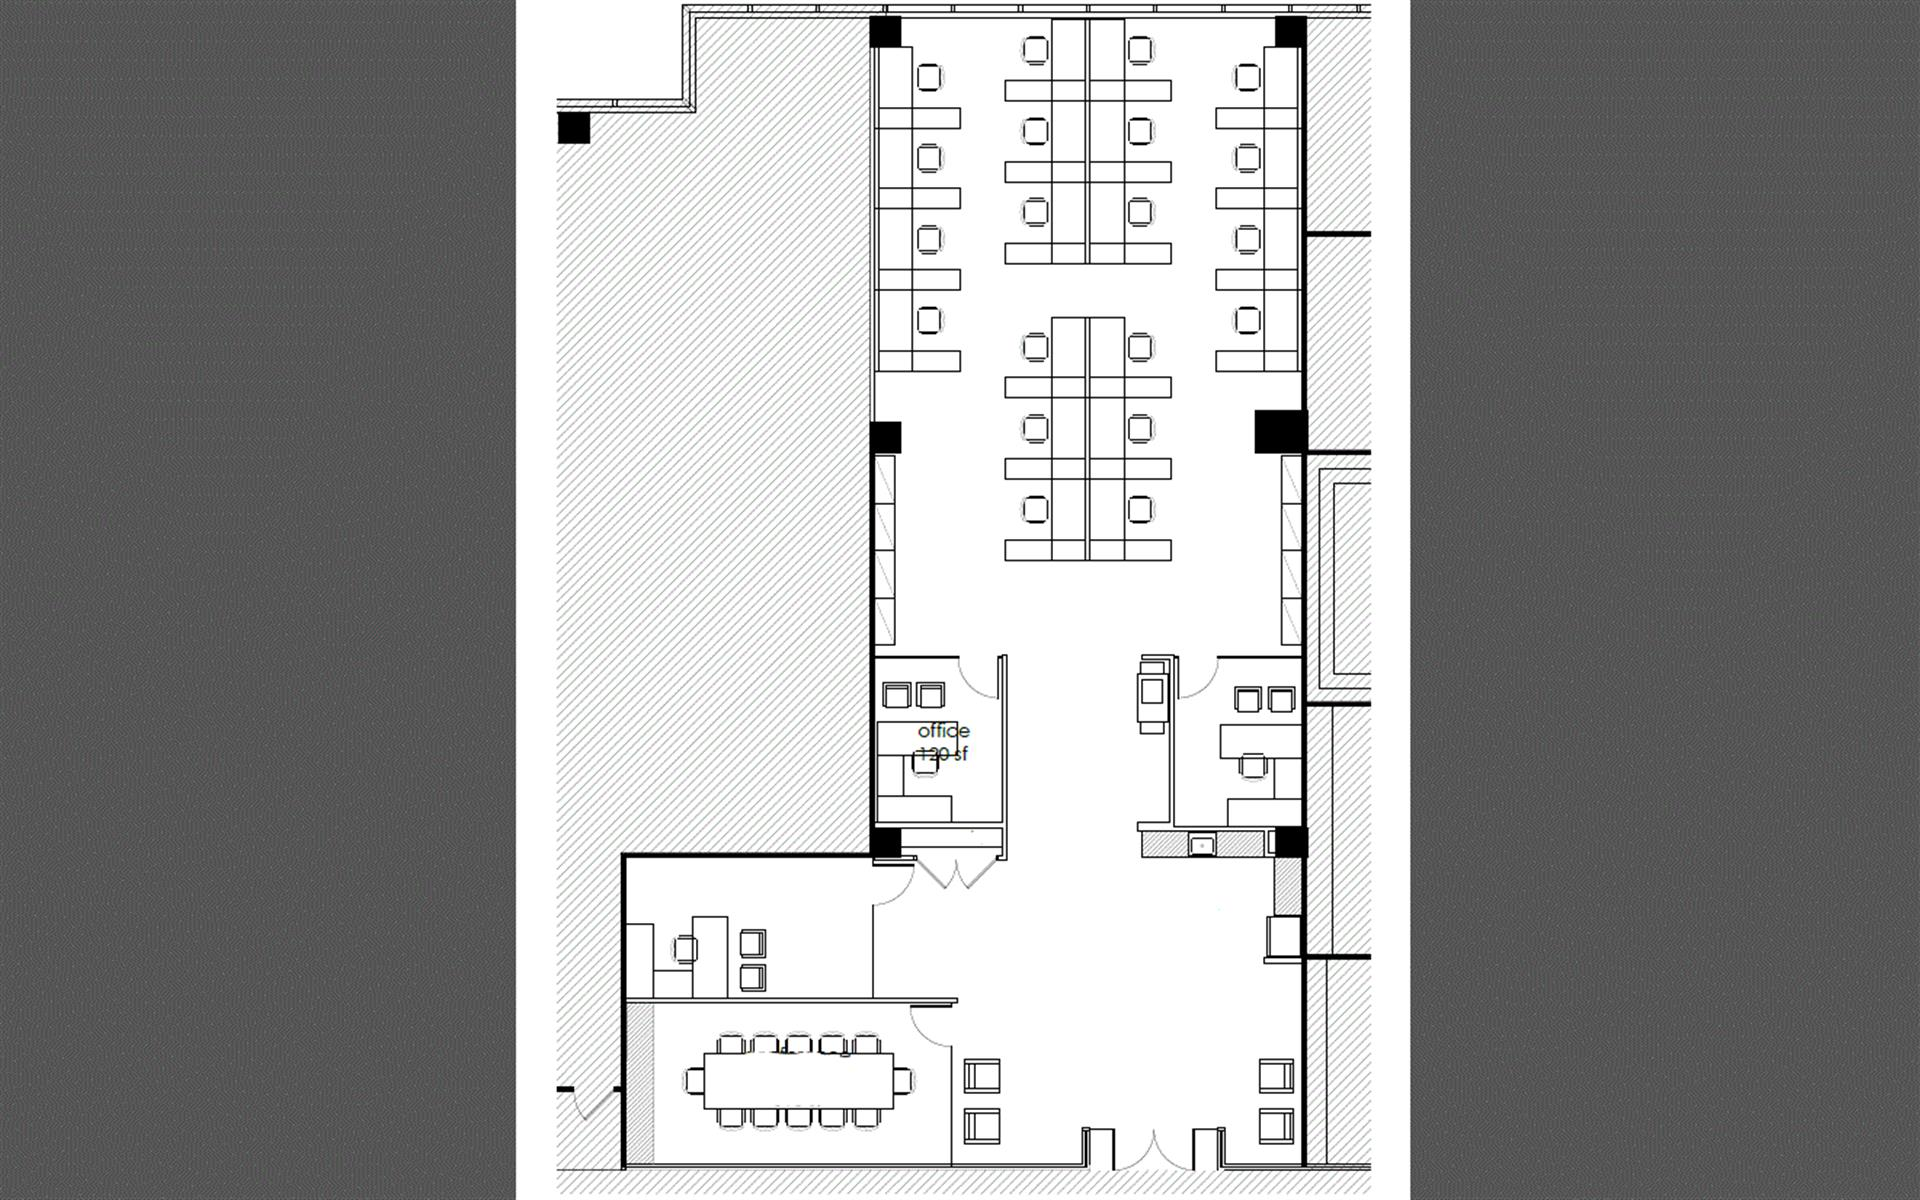 WashingtonREIT | Silverline Center - Team Office | Suite A160 (3808 Sq Ft)